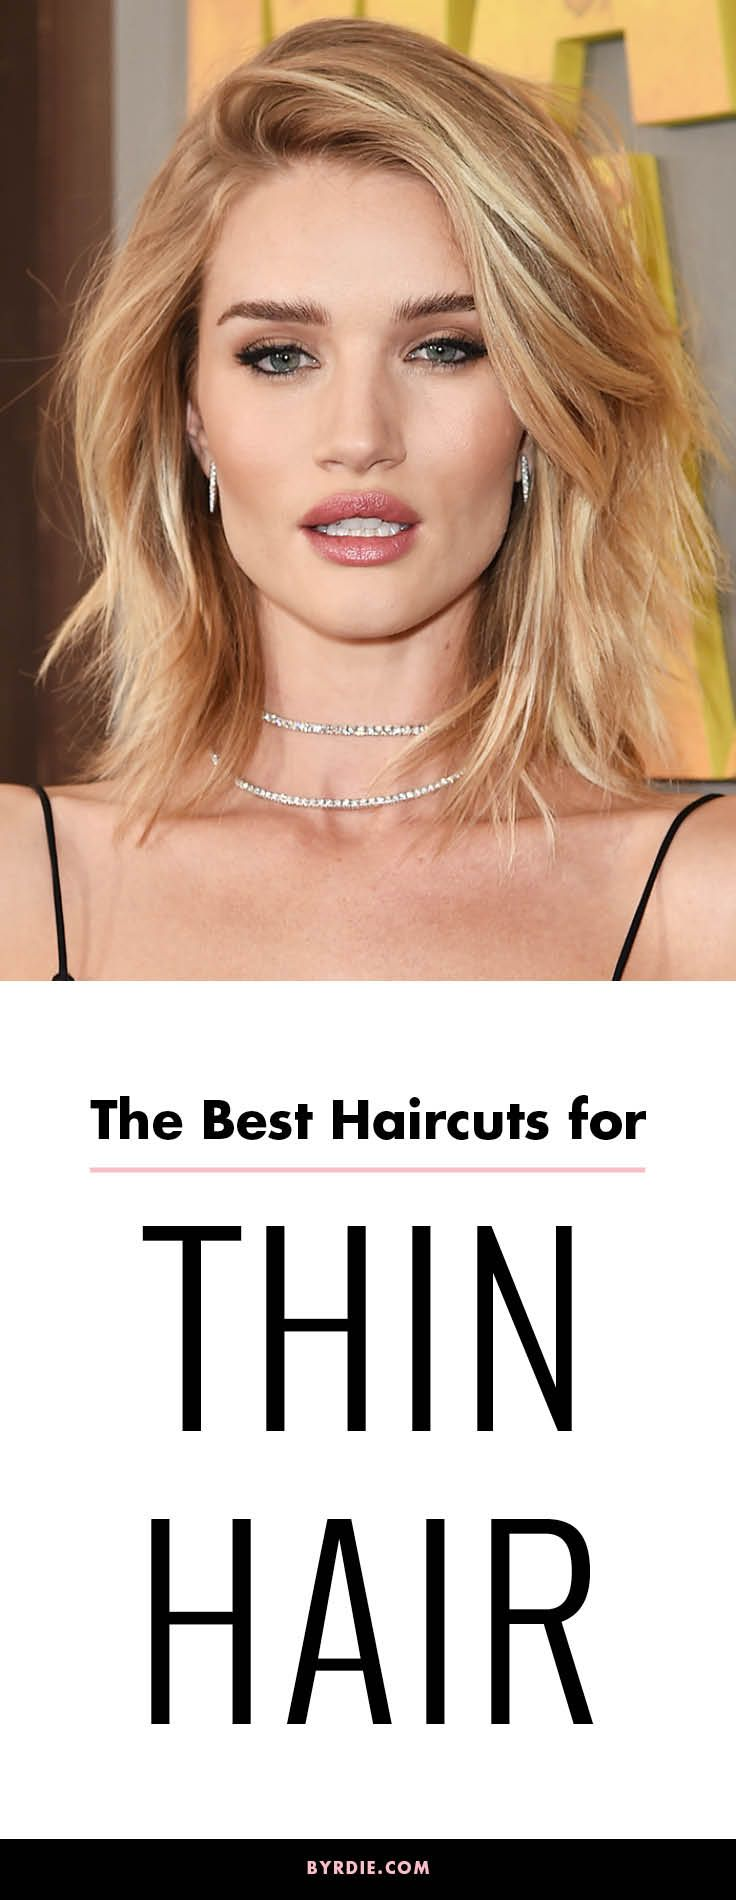 womens haircuts for thin fine hair 17 best ideas about hairstyles thin hair on 3701 | 71fd249e724ab075b2798ad0504112bd